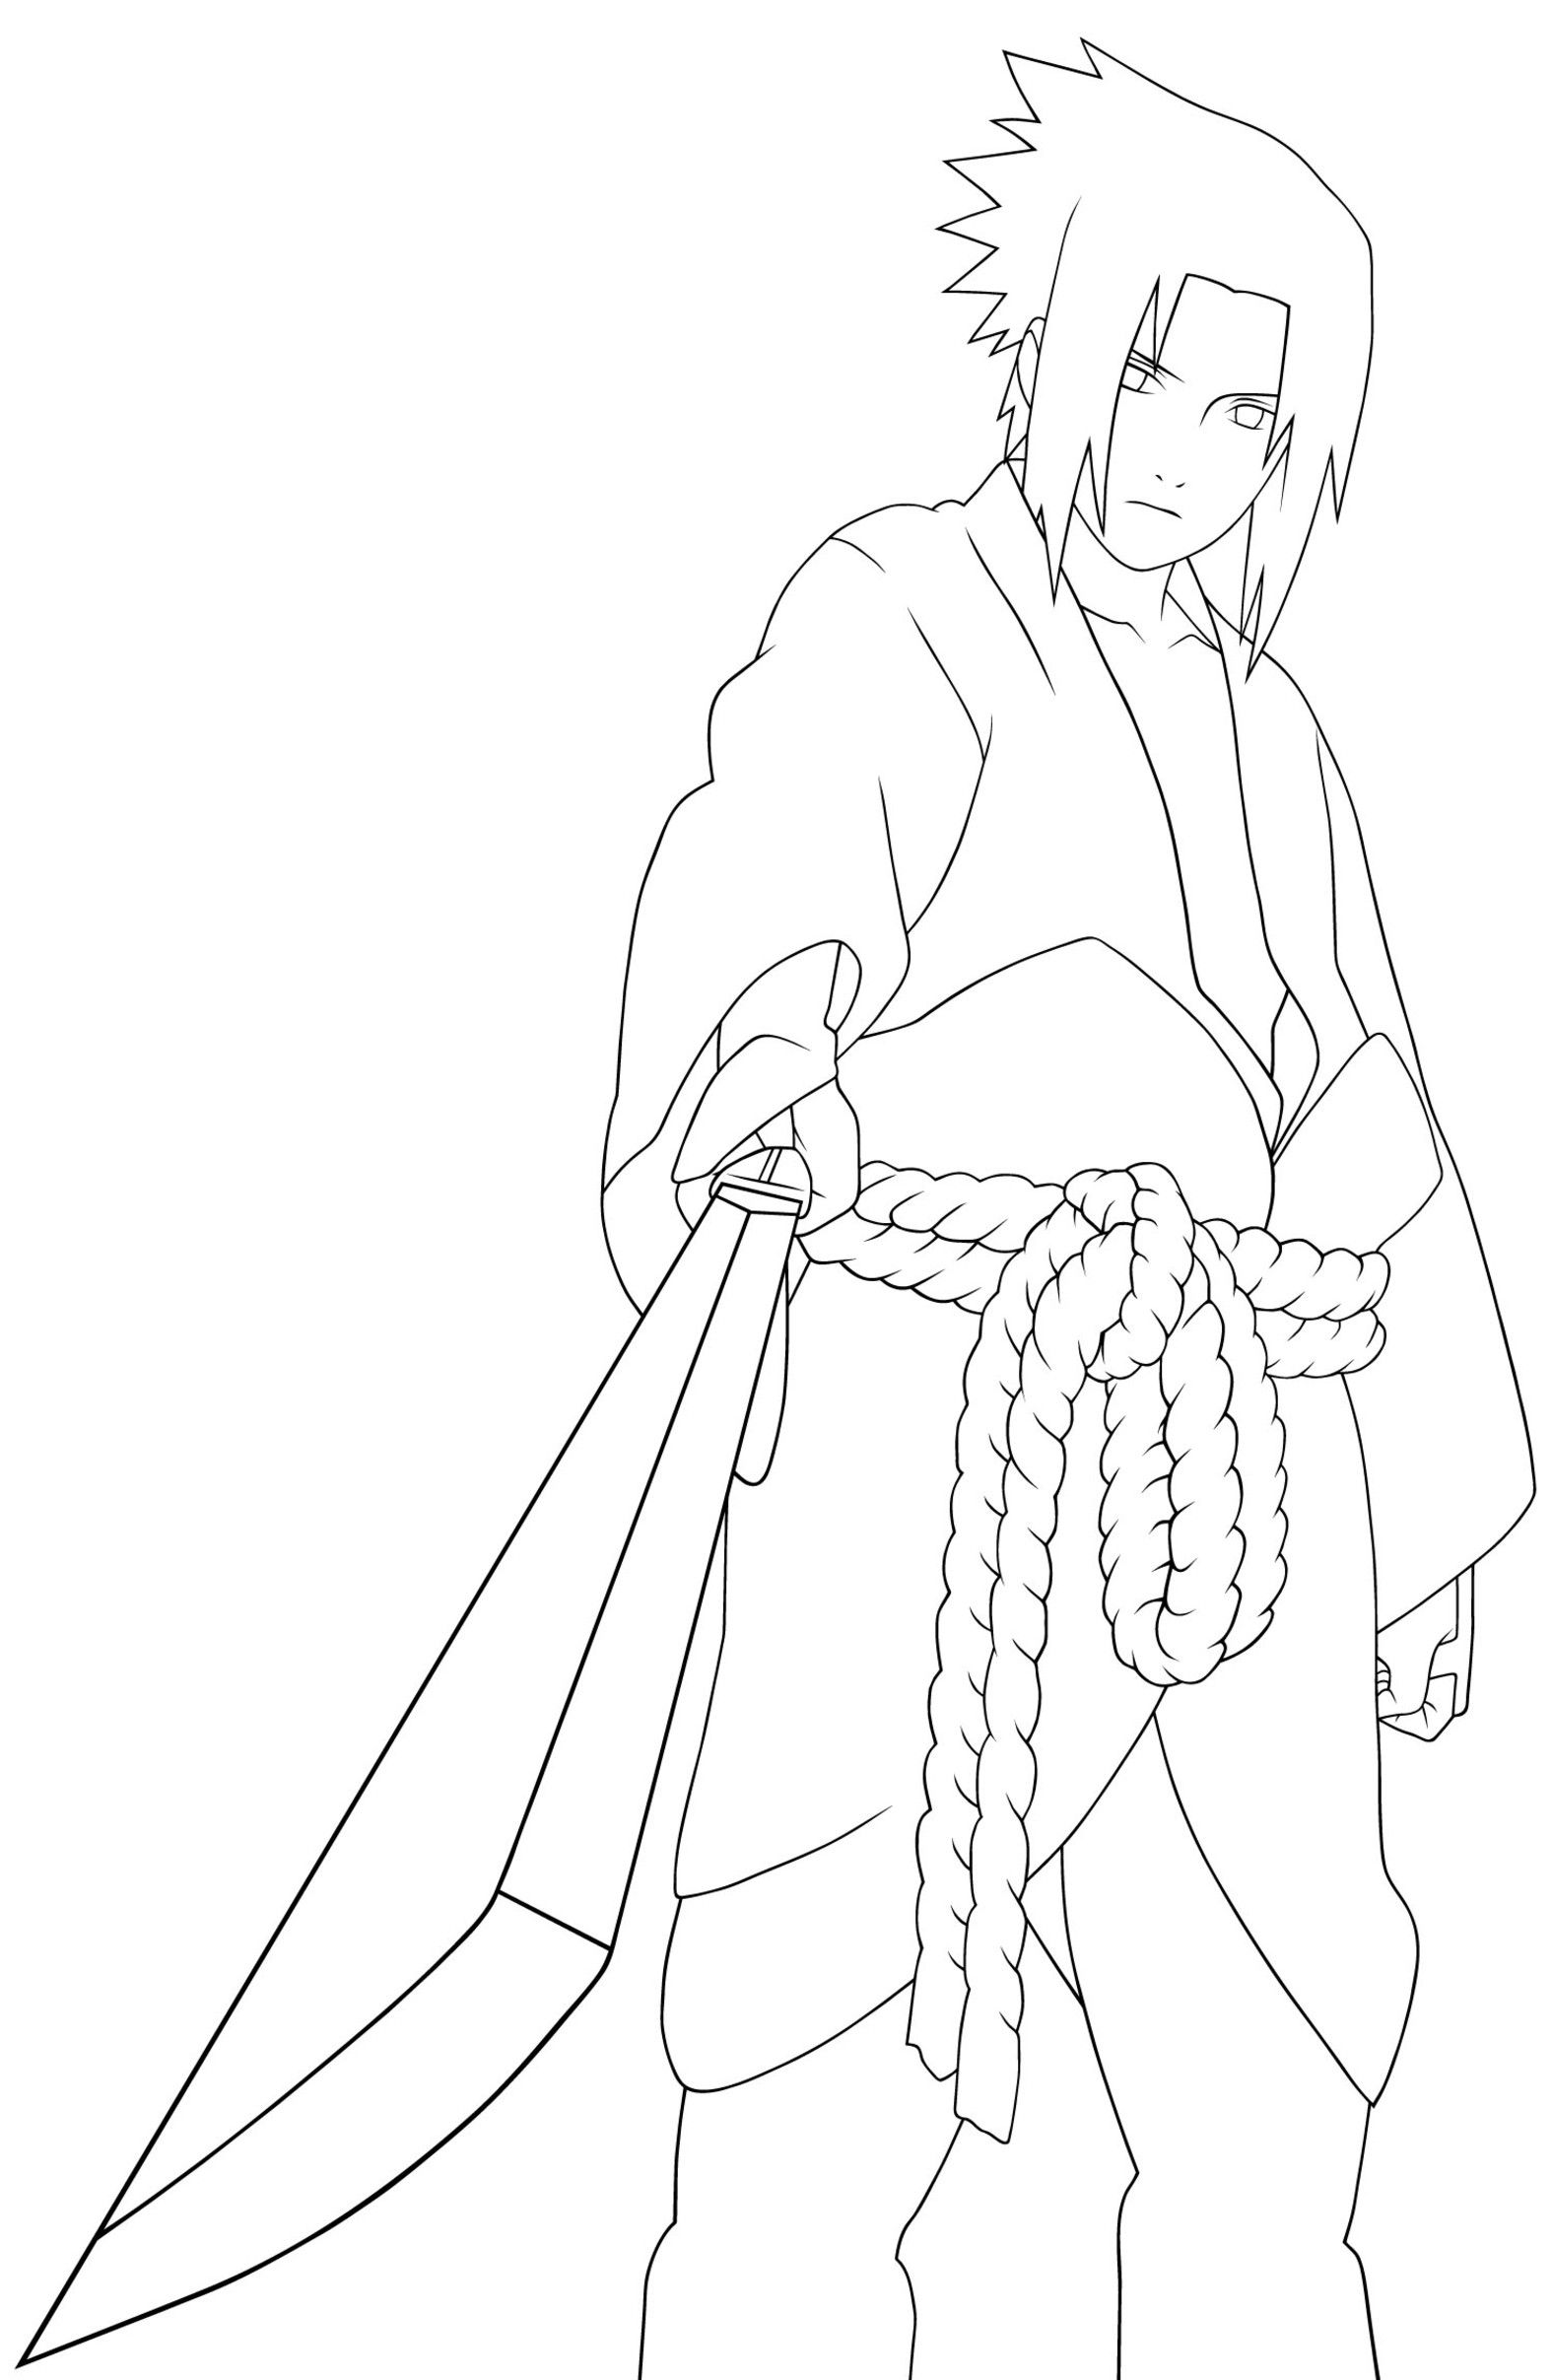 Here Are Some Naruto Coloring Pages For The Kids To Enjoy